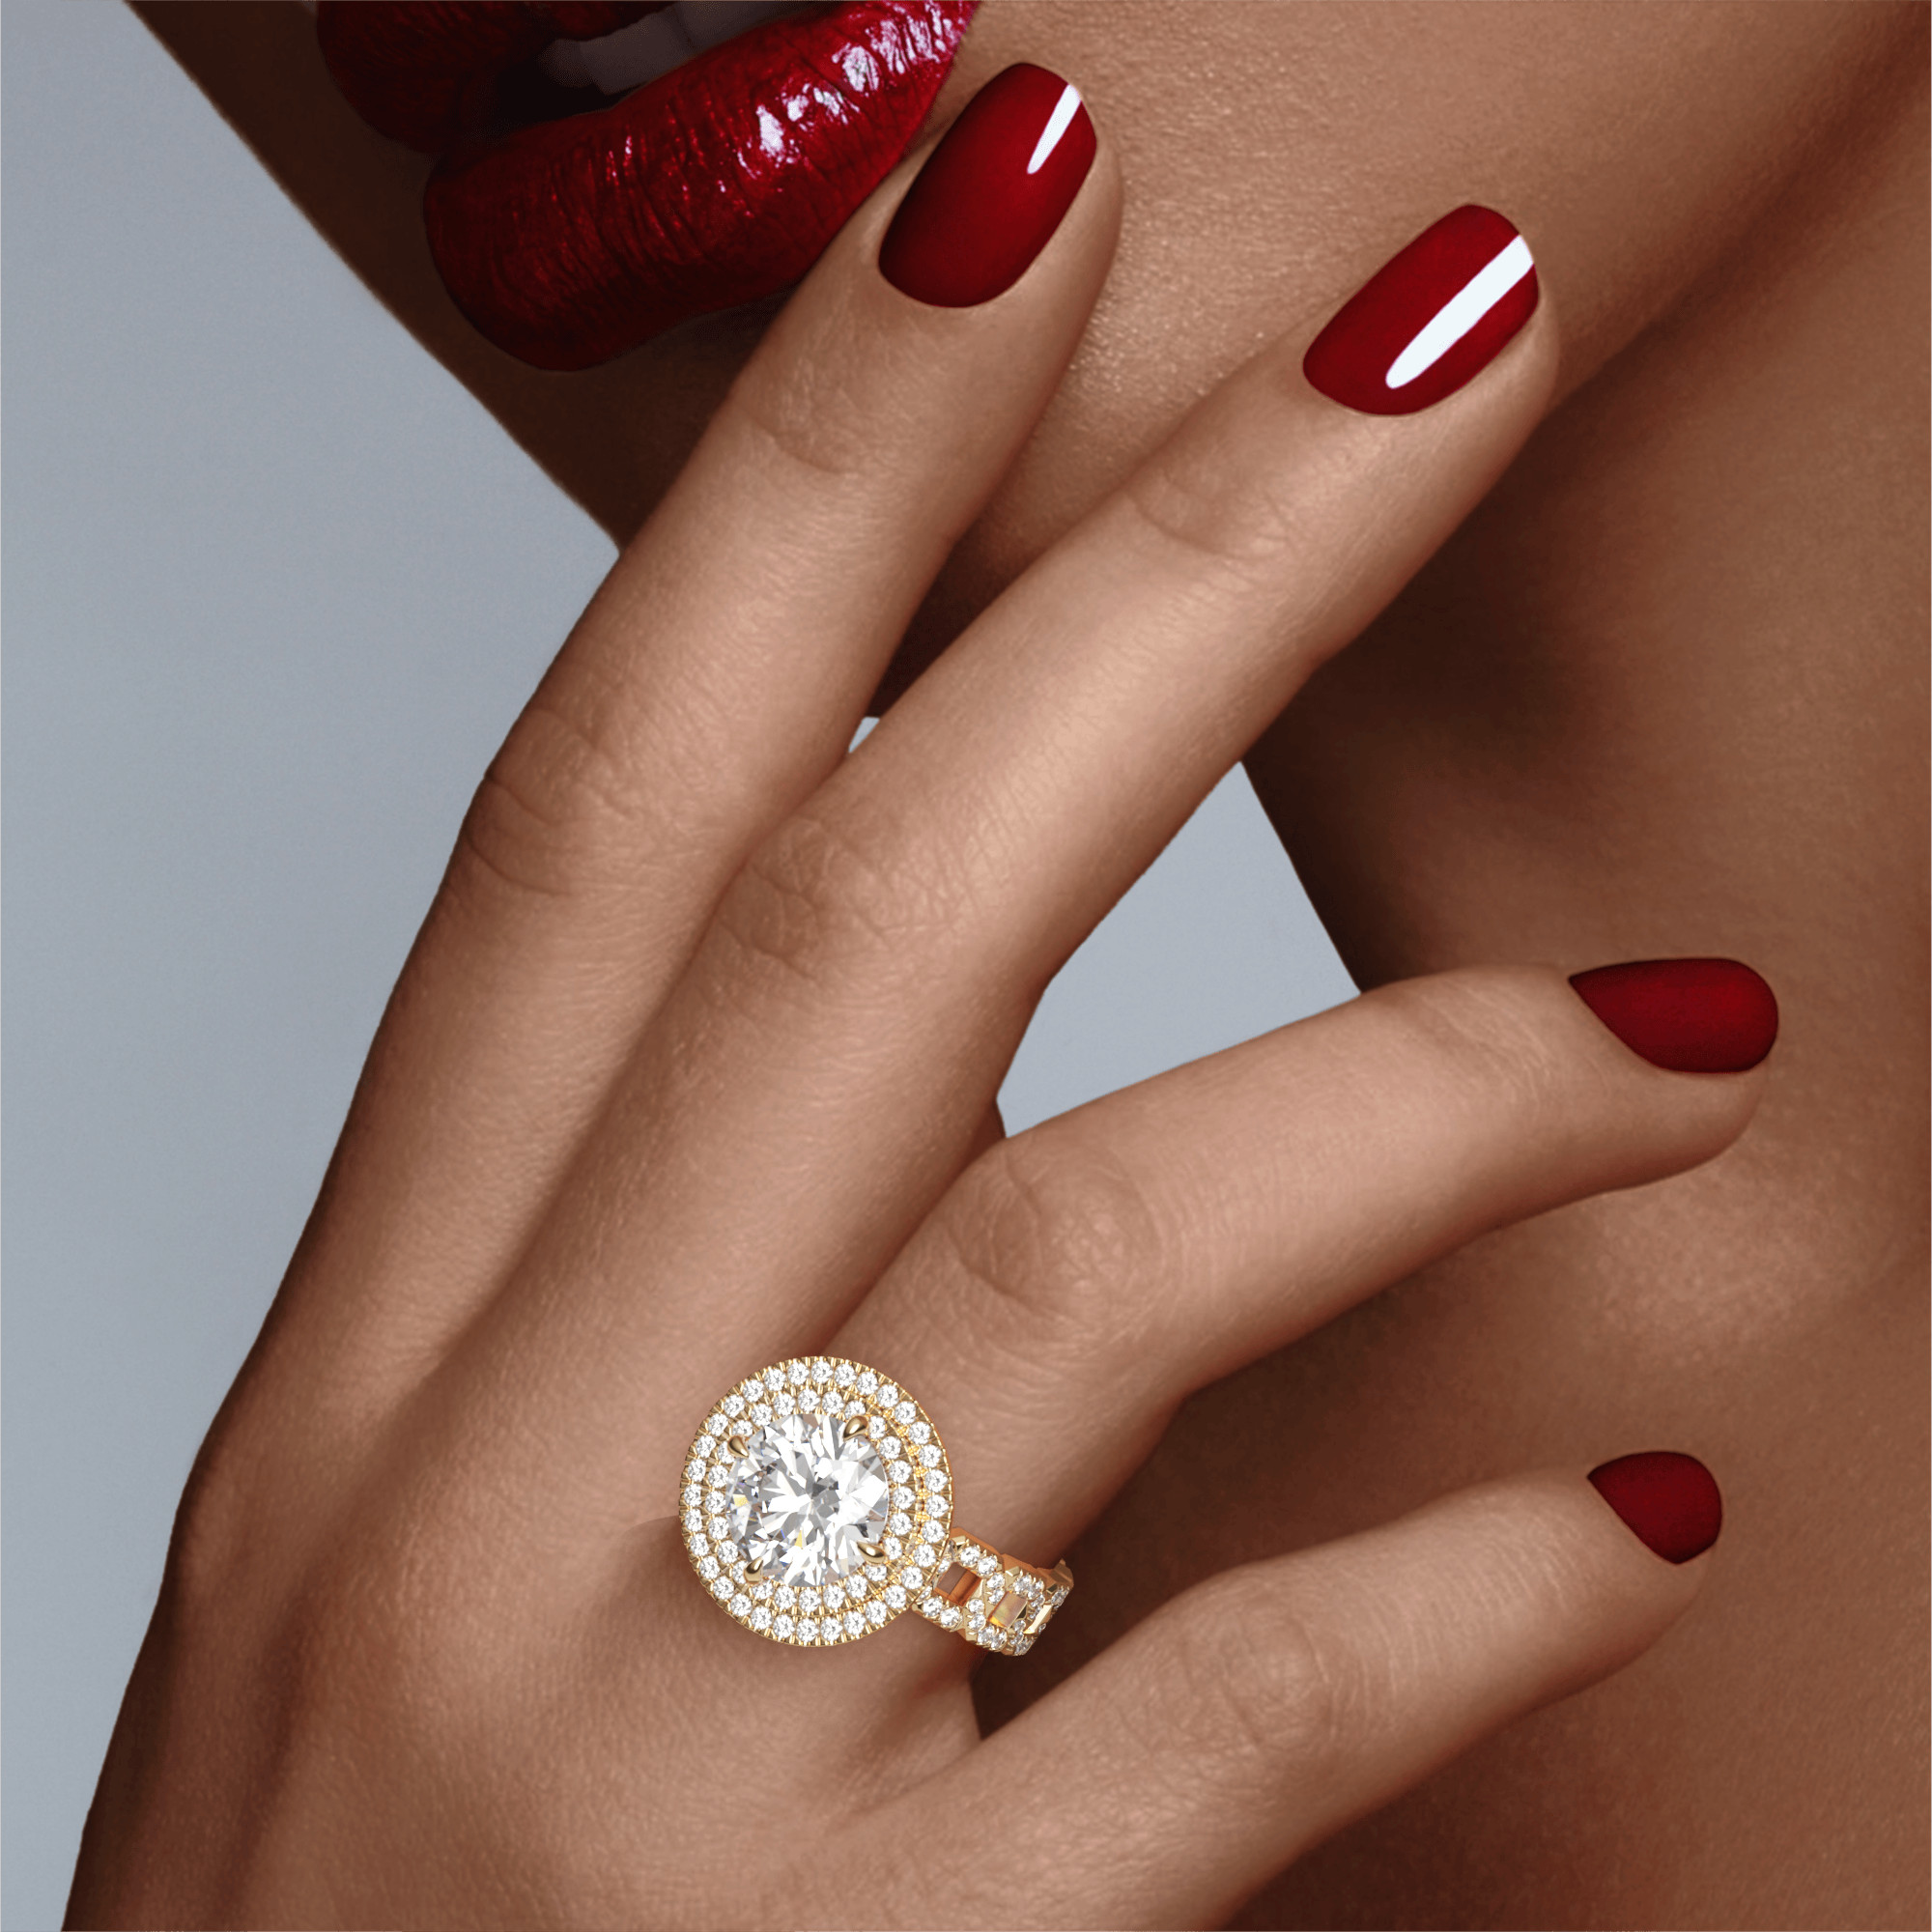 ROUND CUT, DOUBLE HALO SETTING, 16 PAVE LINKS, 18K YELLOW GOLD